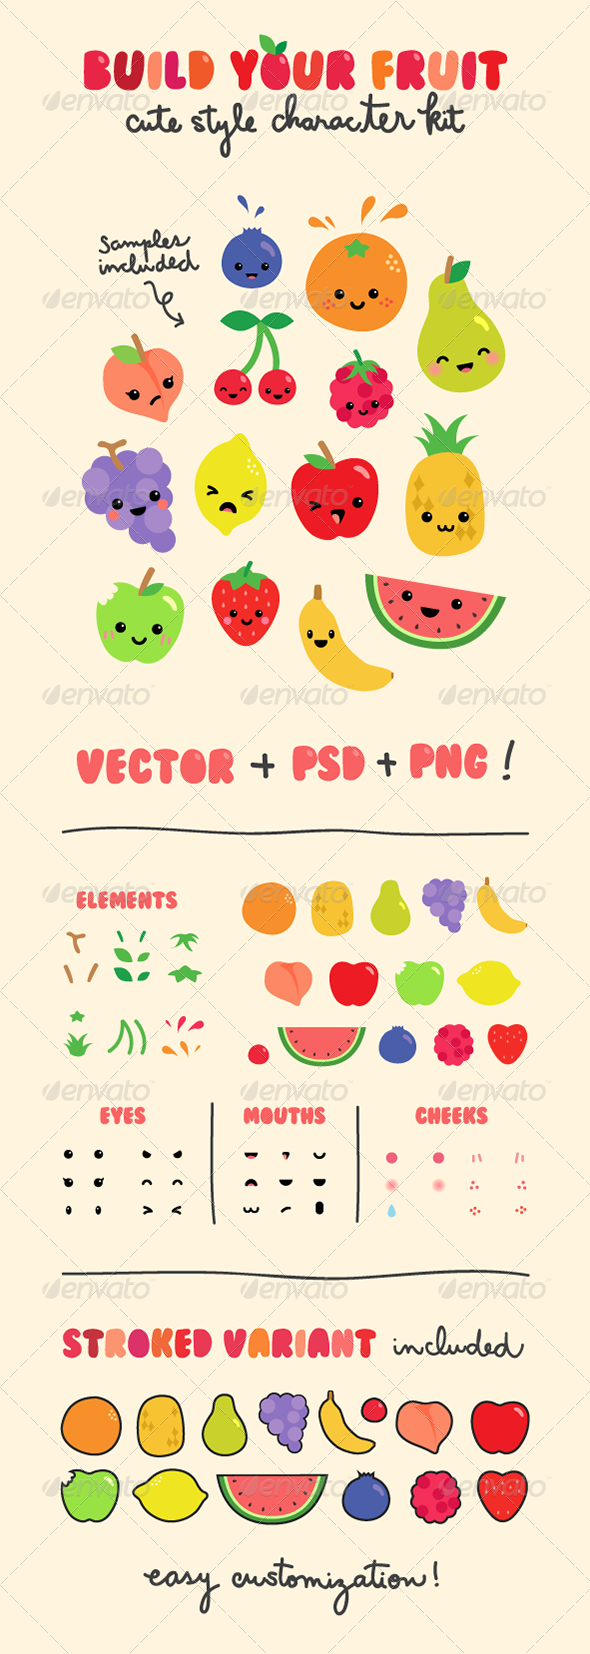 GraphicRiver Fruit Character Creation Kit 4810805